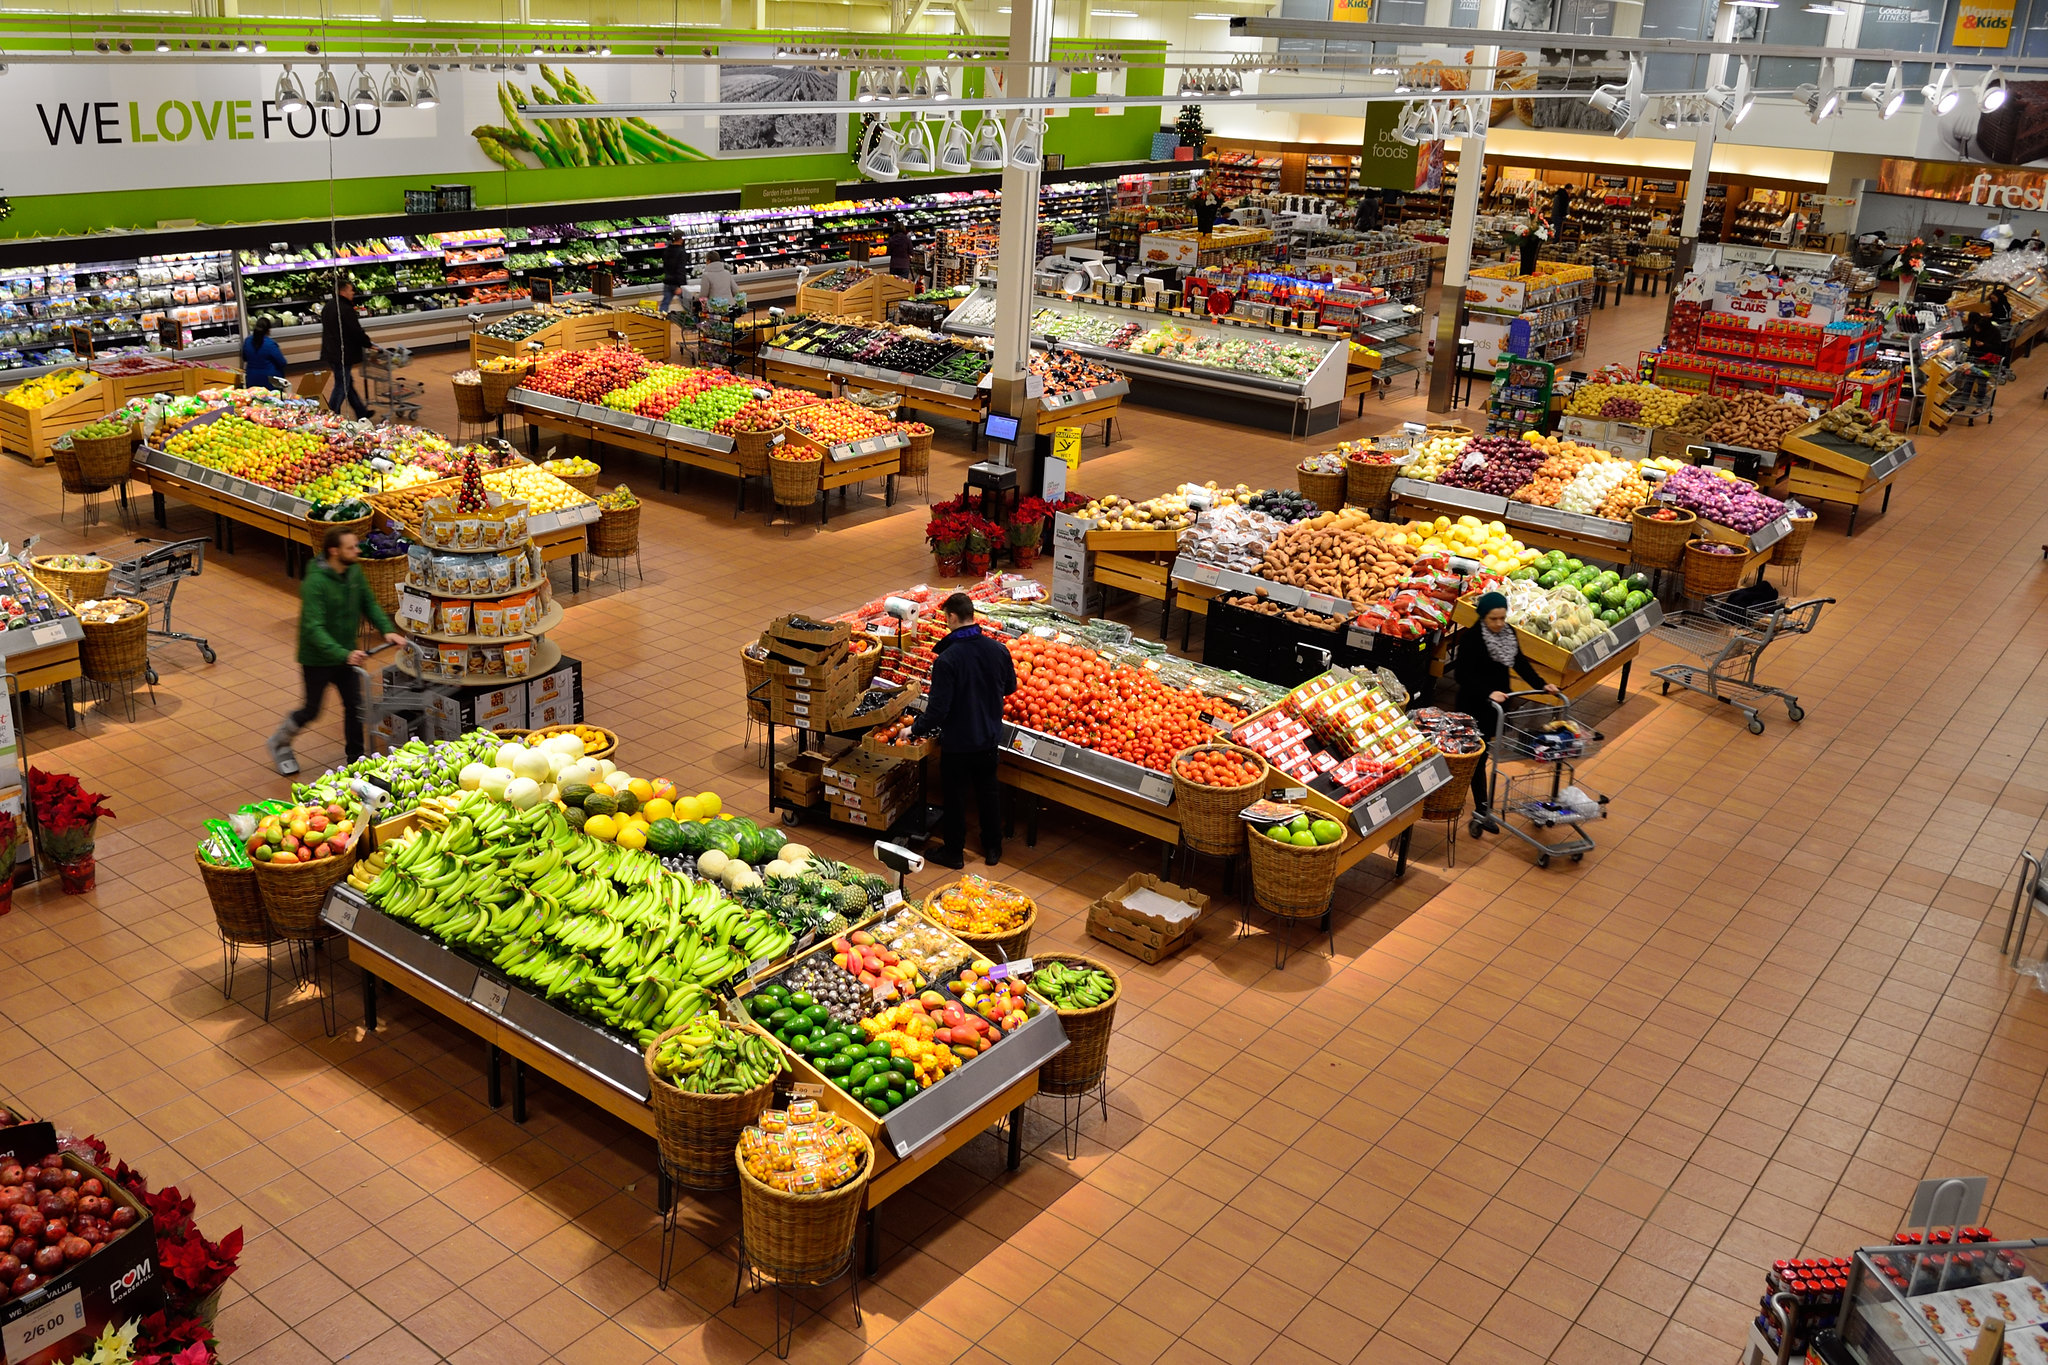 Aerial view of a supermarket fruit and vegetable section - clean and bright and well spaced out